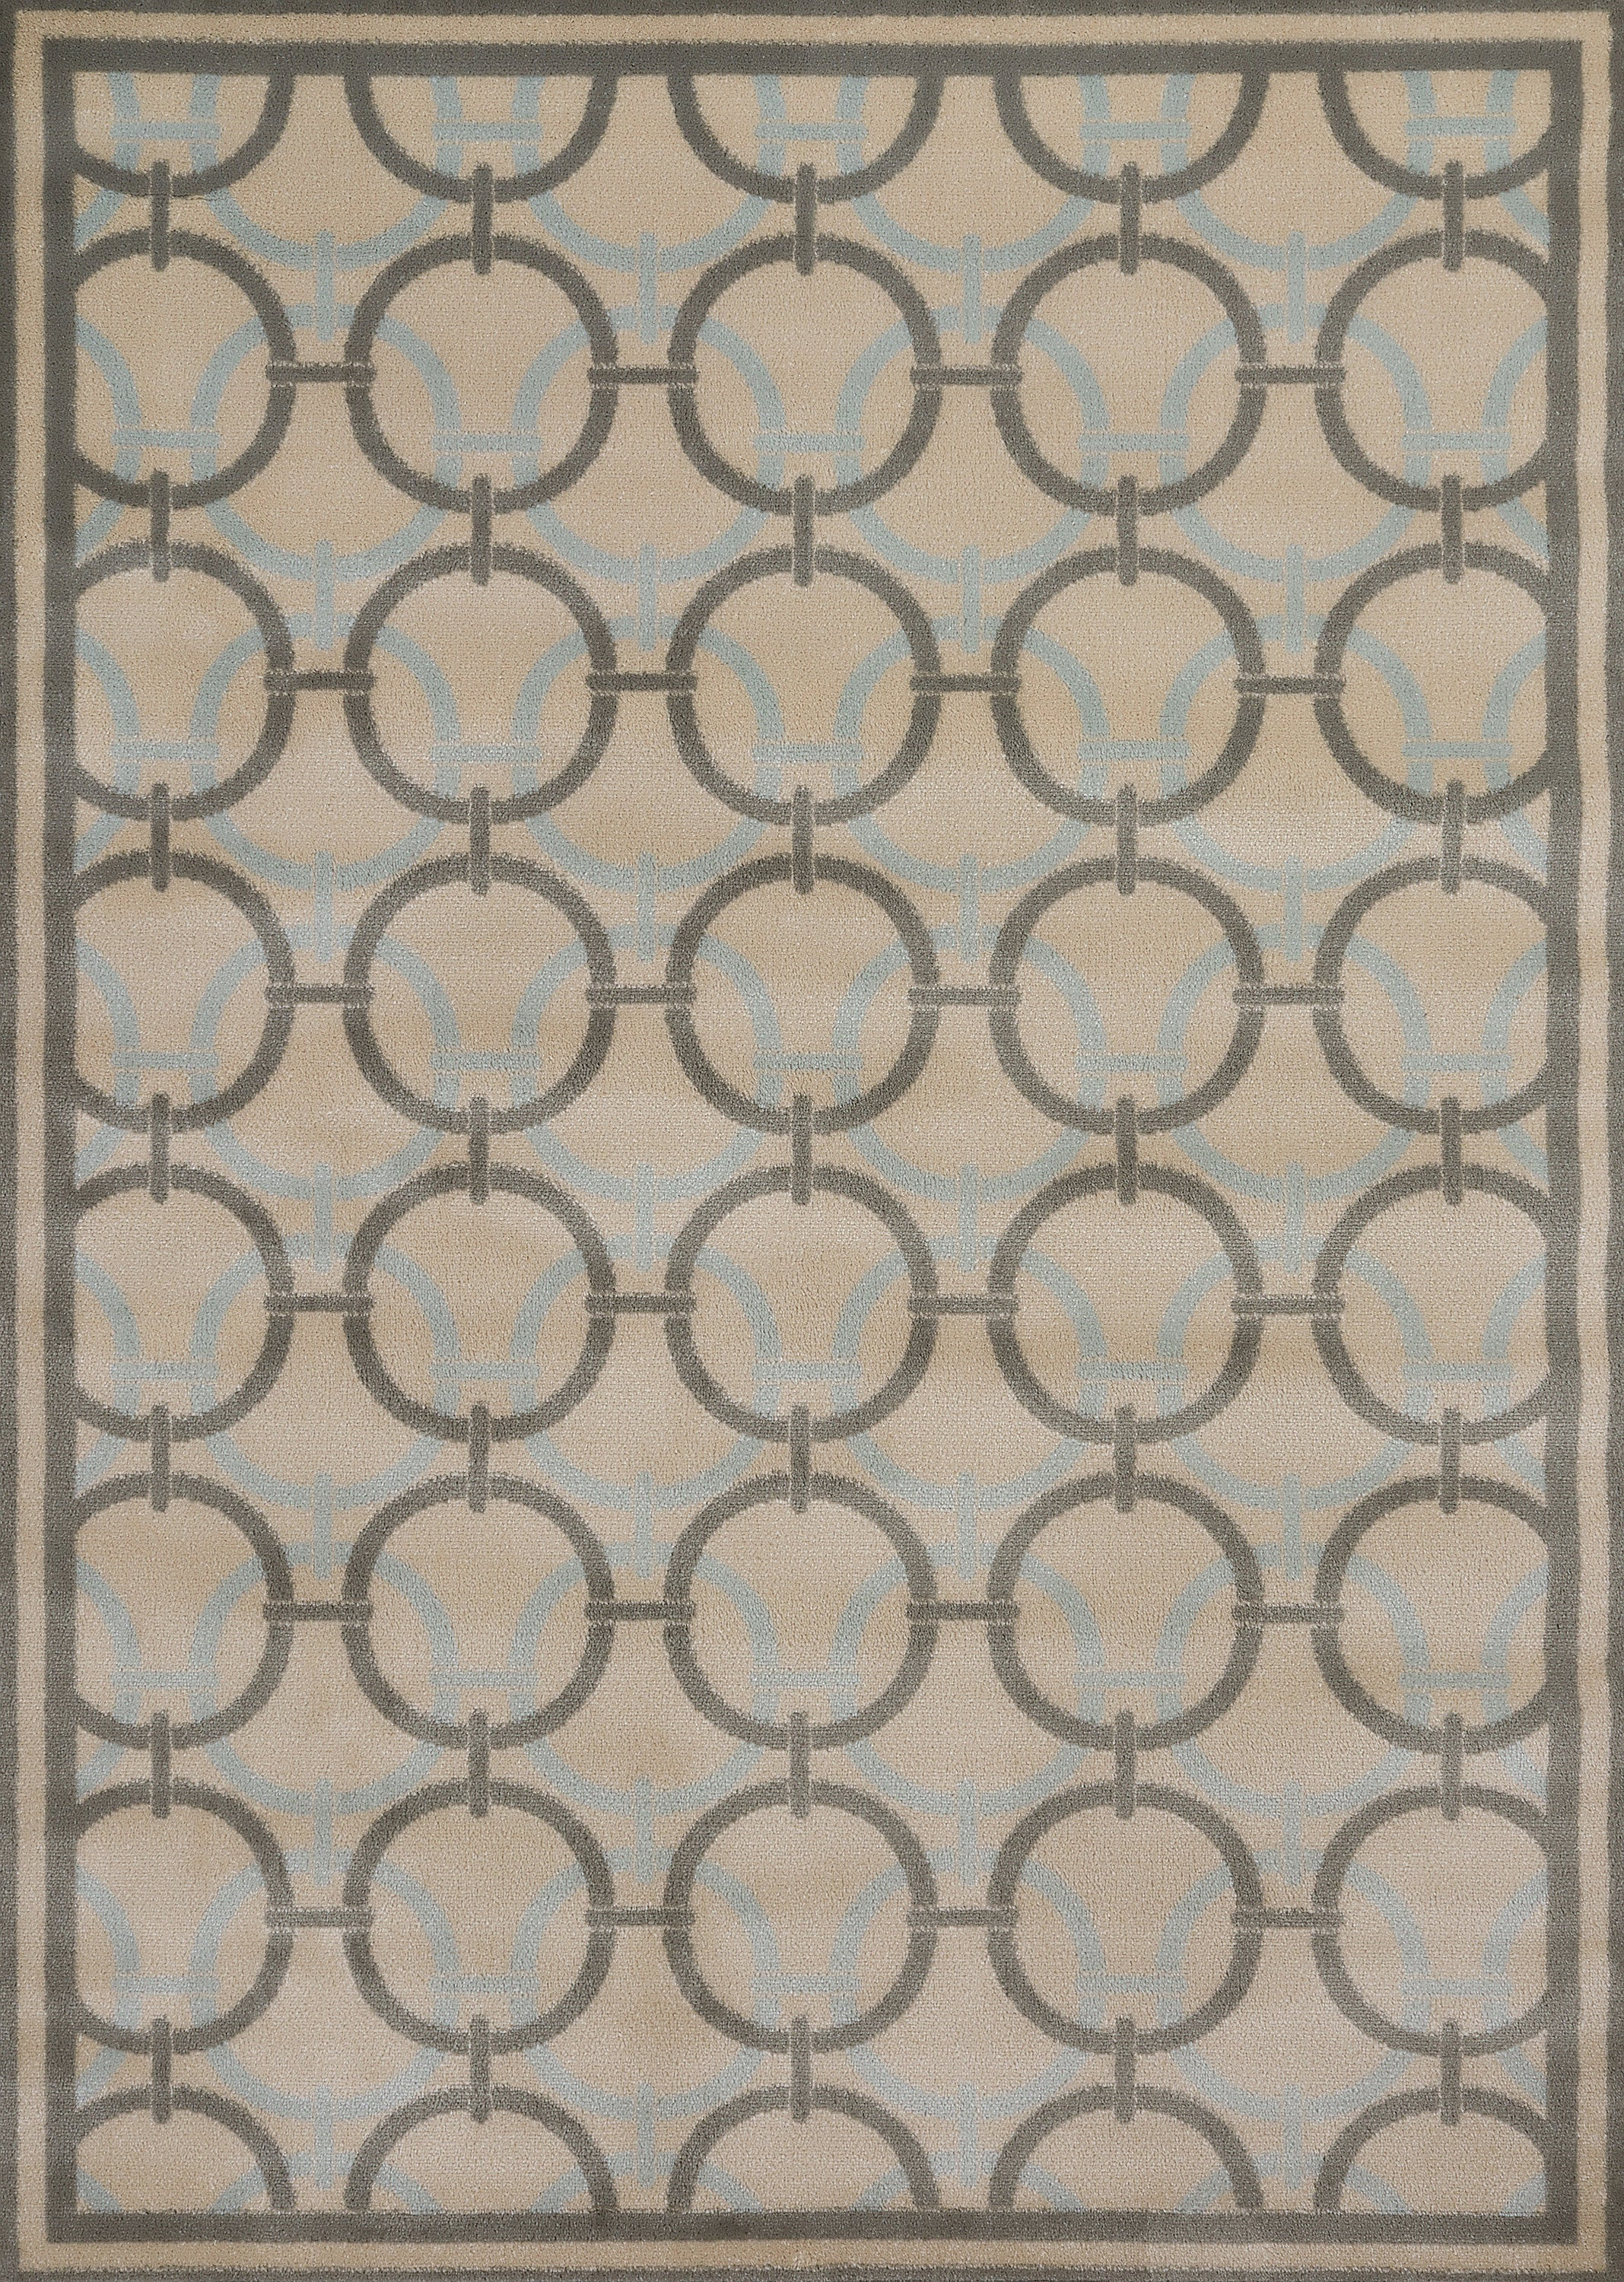 United Weavers - Nouveau Rug Collection -  PORTICO SAGE (421 10447)